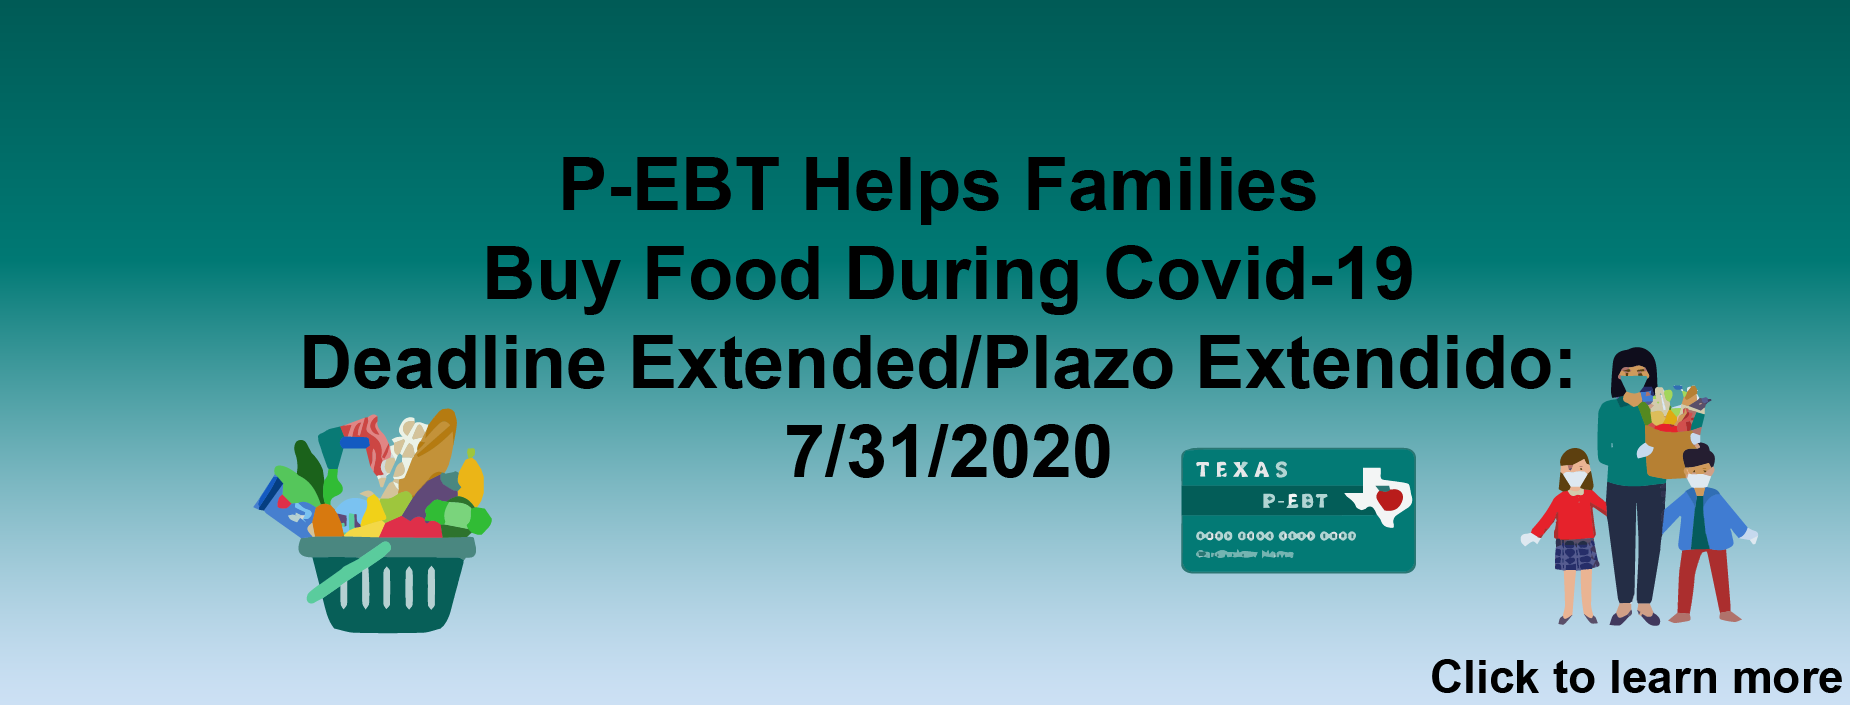 P-EBT Helps Families  Buy Food During Covid-19 Deadline Extended/Plazo Extendido:  7/31/2020